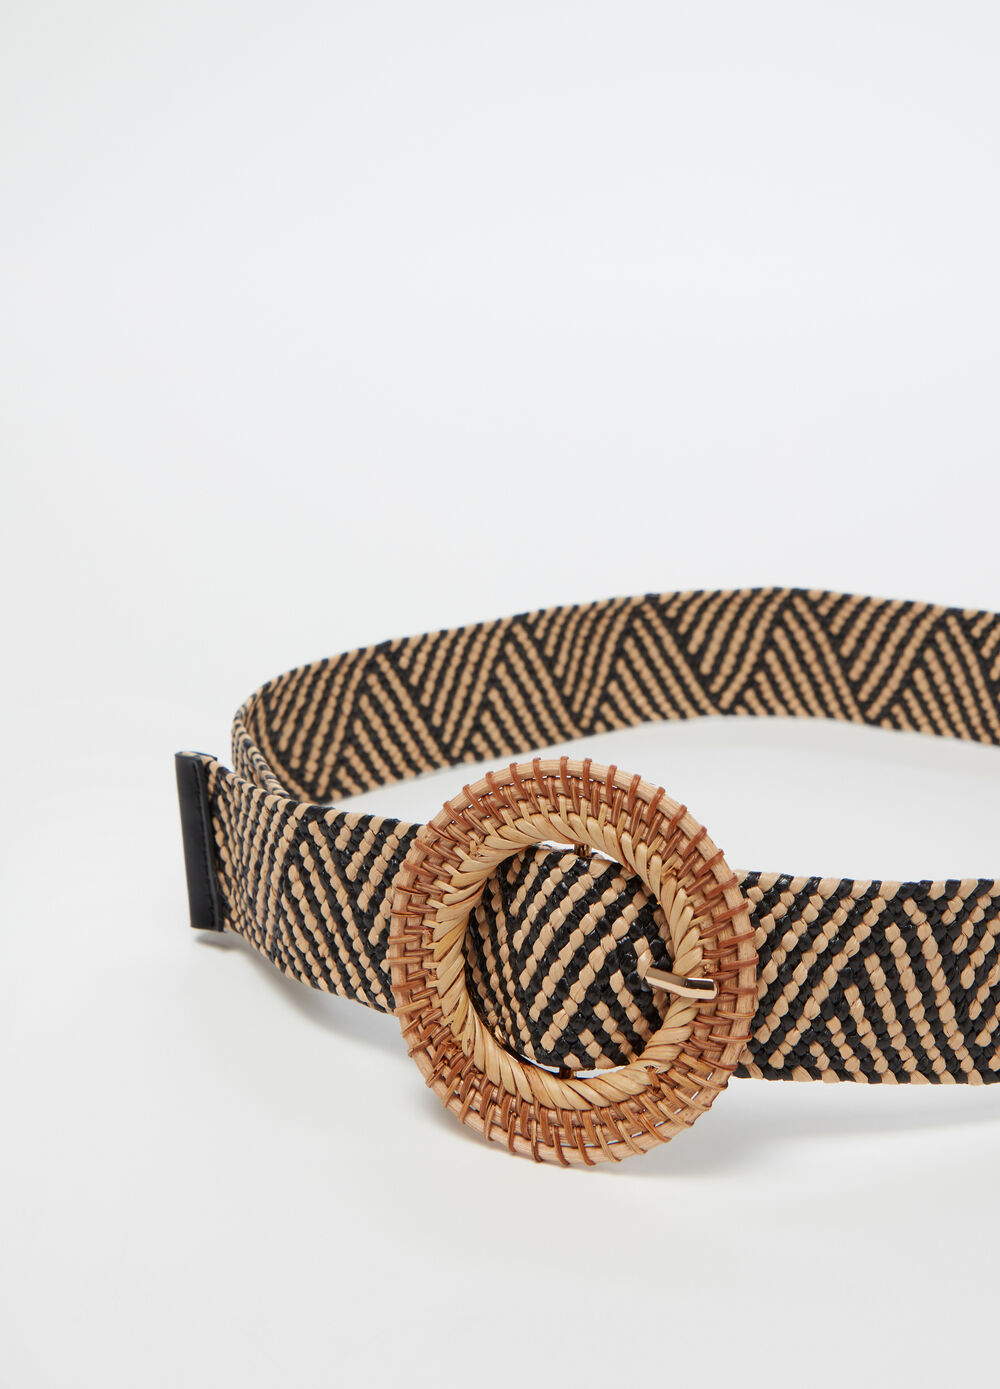 Braided low-rise belt with round buckle